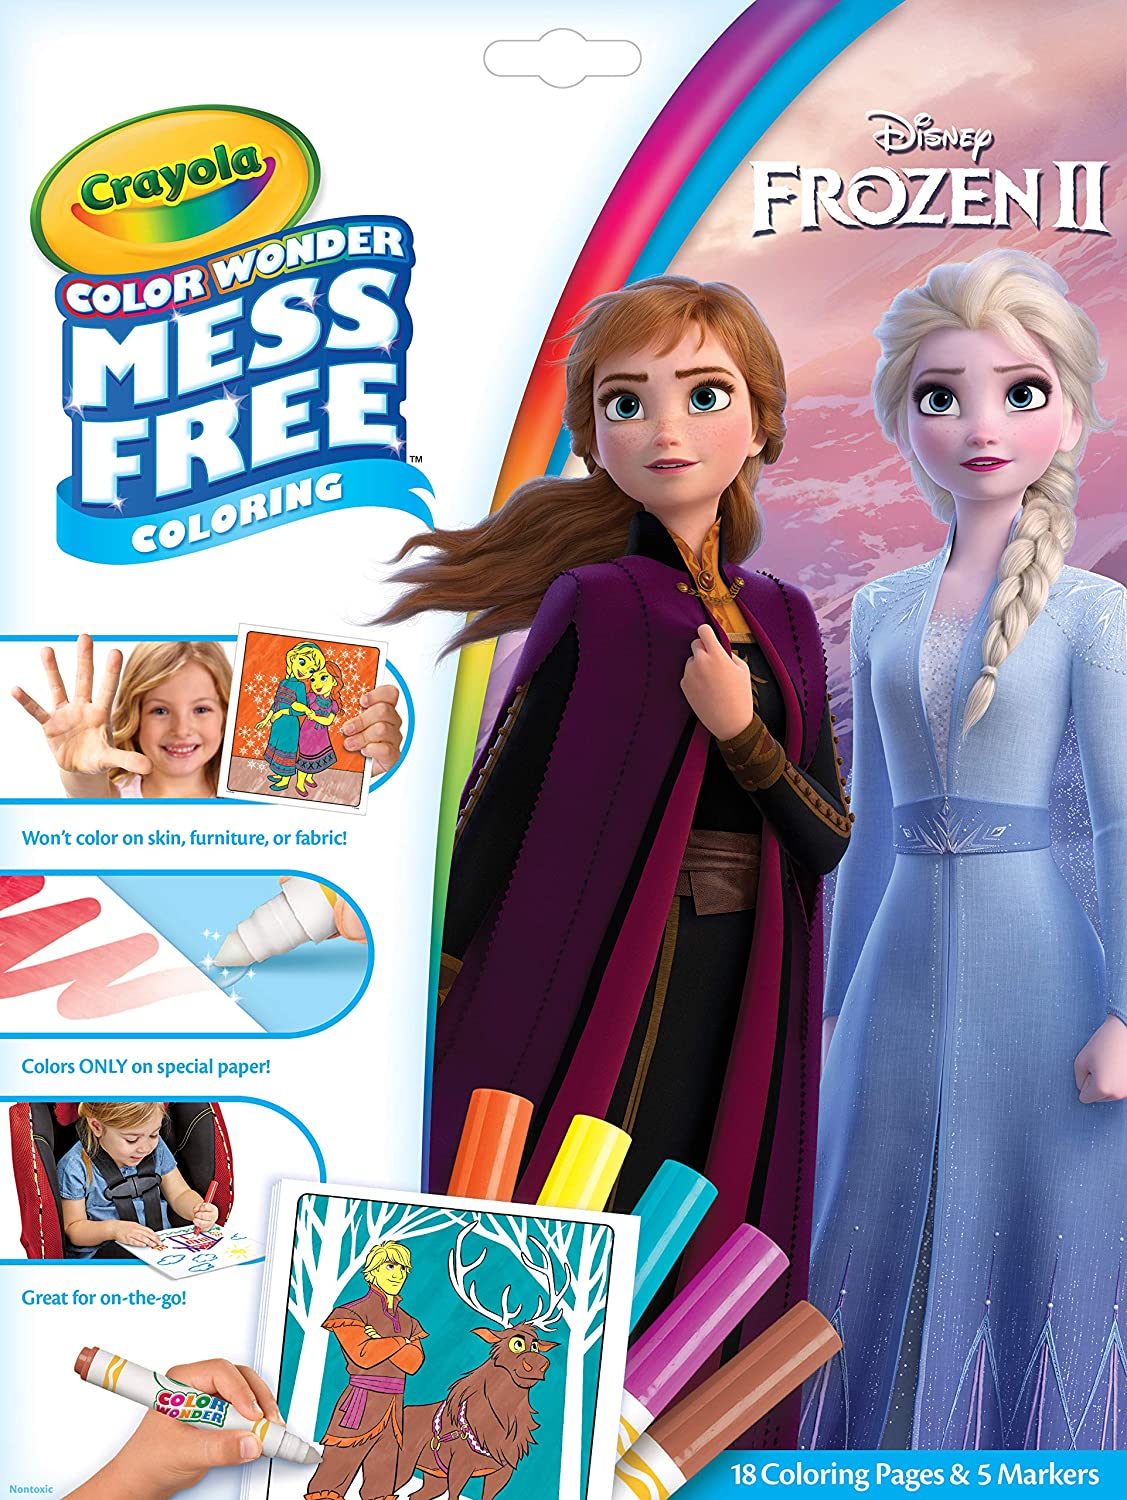 Crayola Color Wonder Frozen Coloring Book   Markers  Mess Free Coloring  Gift for Kids  Age 3  4  5  6  Styles May Vary